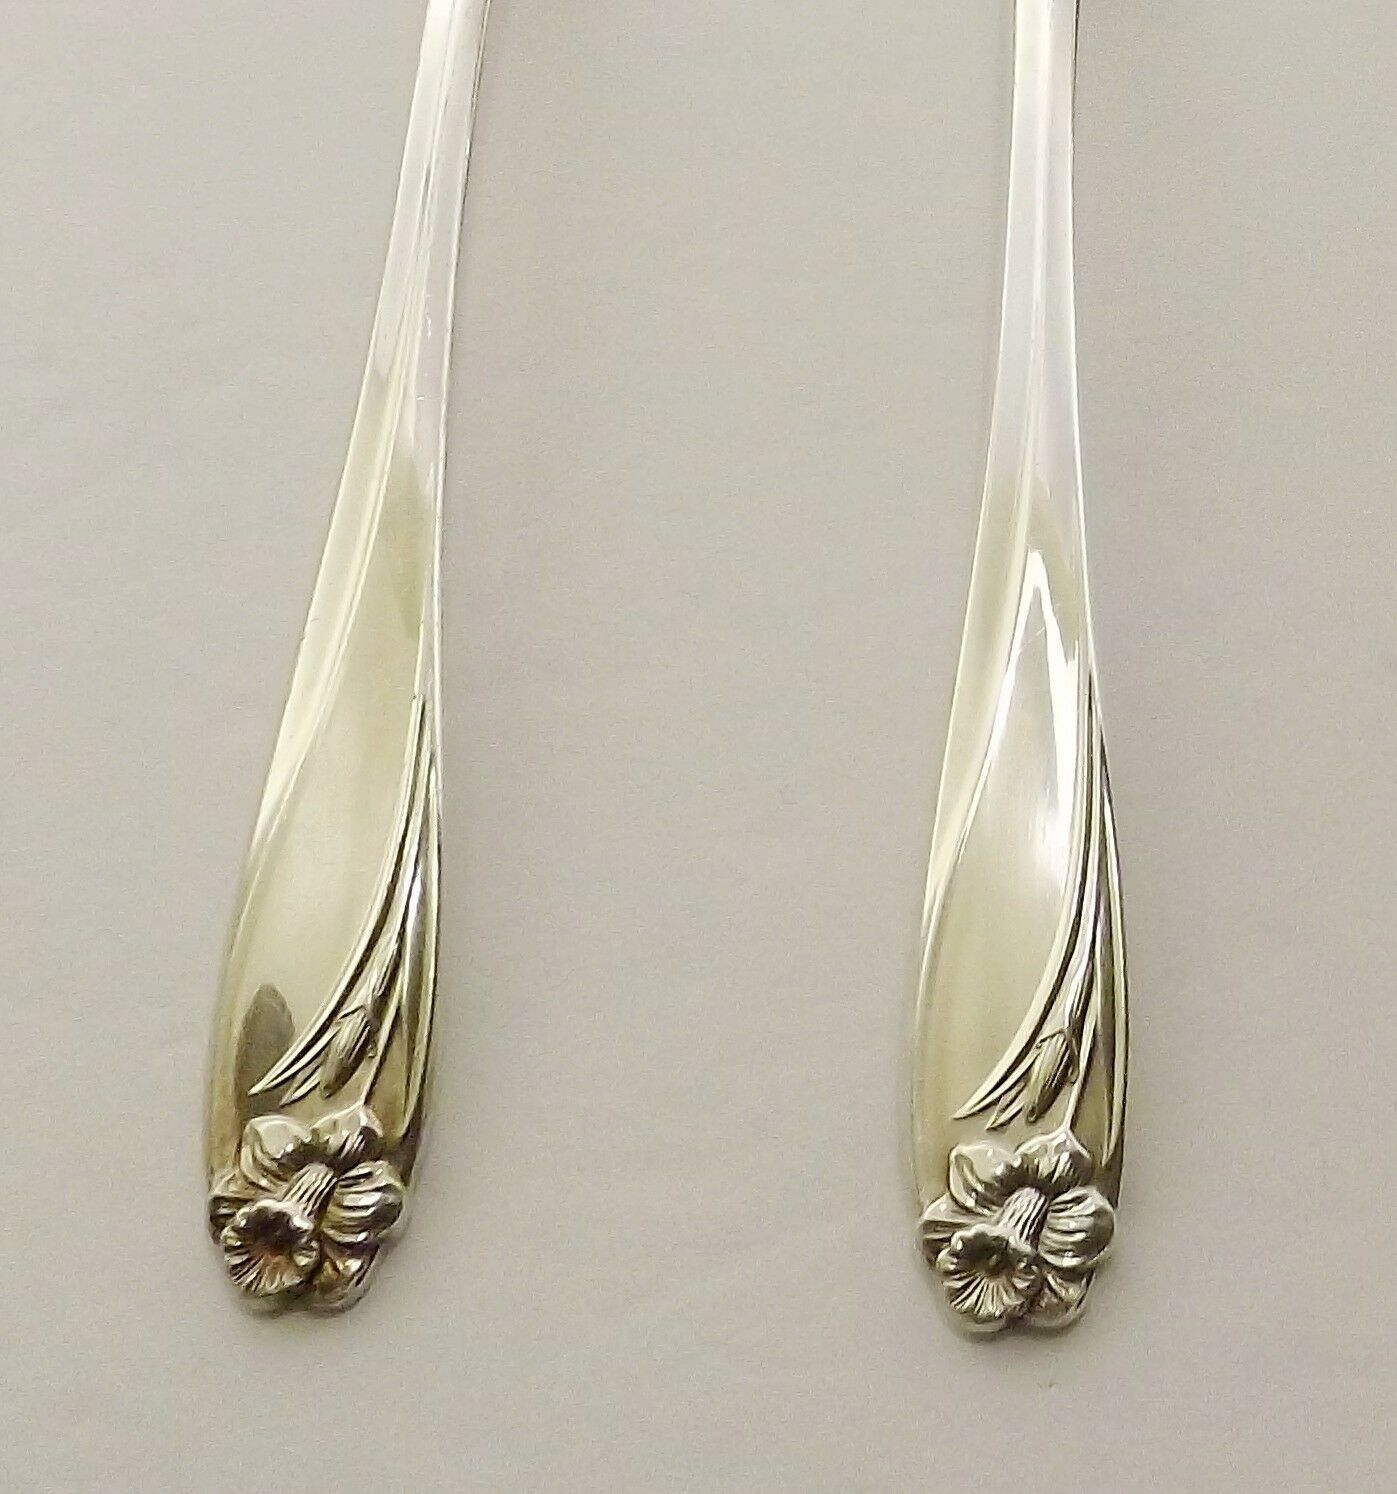 Primary image for 1847 Rogers Daffodil Set of 4 Cream Soup Spoons Silverplate-2 Available 1950's